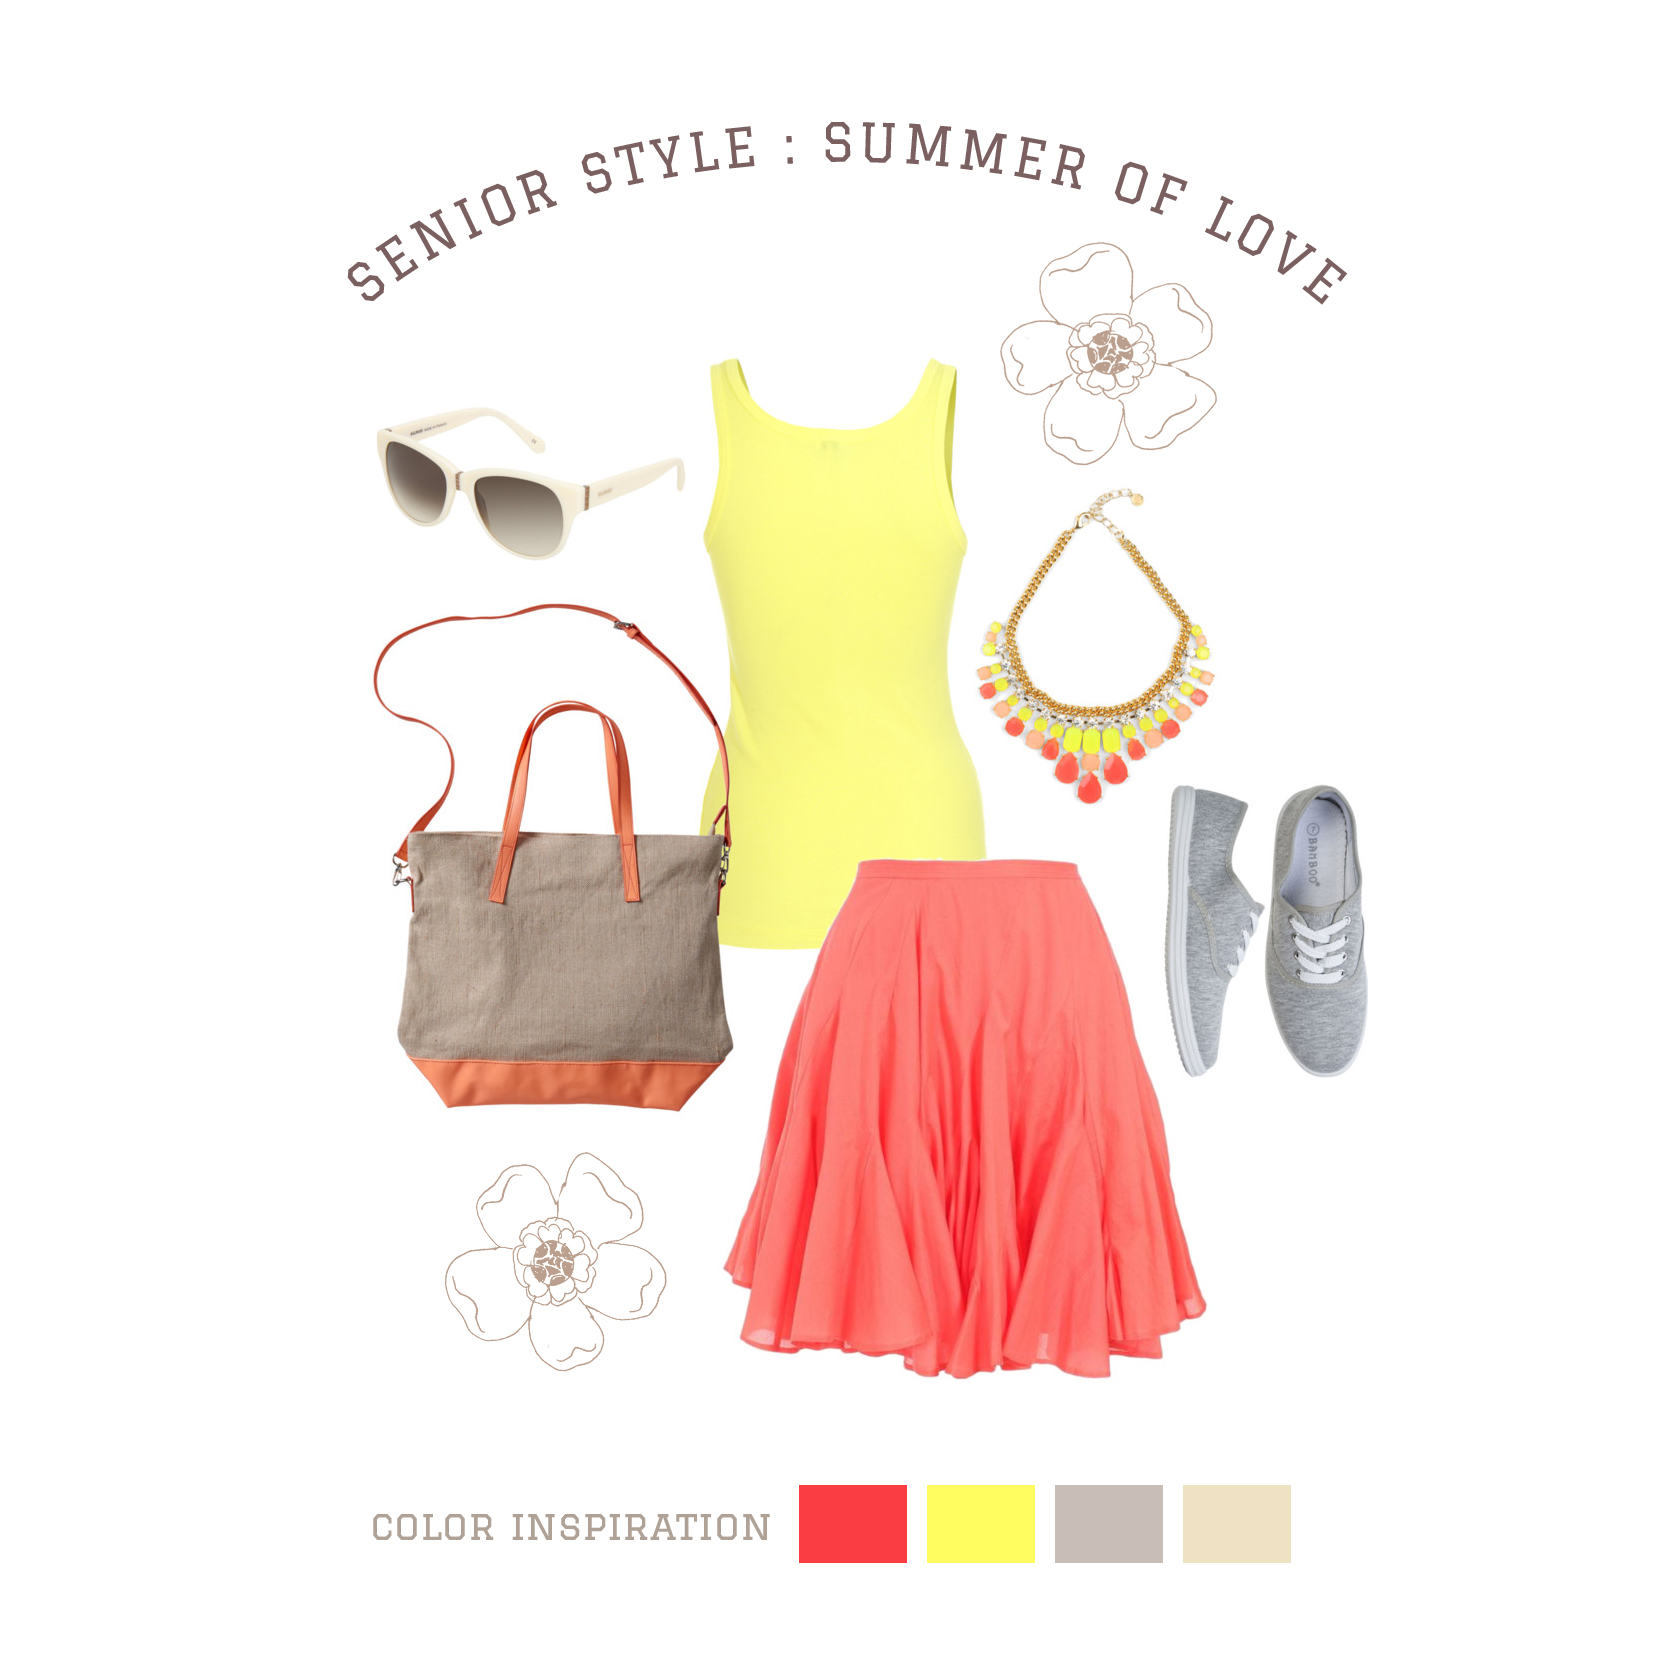 Summer of Love Coral and yellow solids form the base of the outfit, allowing interesting jewelry and accessoriesto create added detail. A flowy skirt adds a whimsical touch. Canvas accessories and shoeskeep things casual. Natural fiber fabrics, such as cotton or linen, help to keep you cool in thewarm sun!